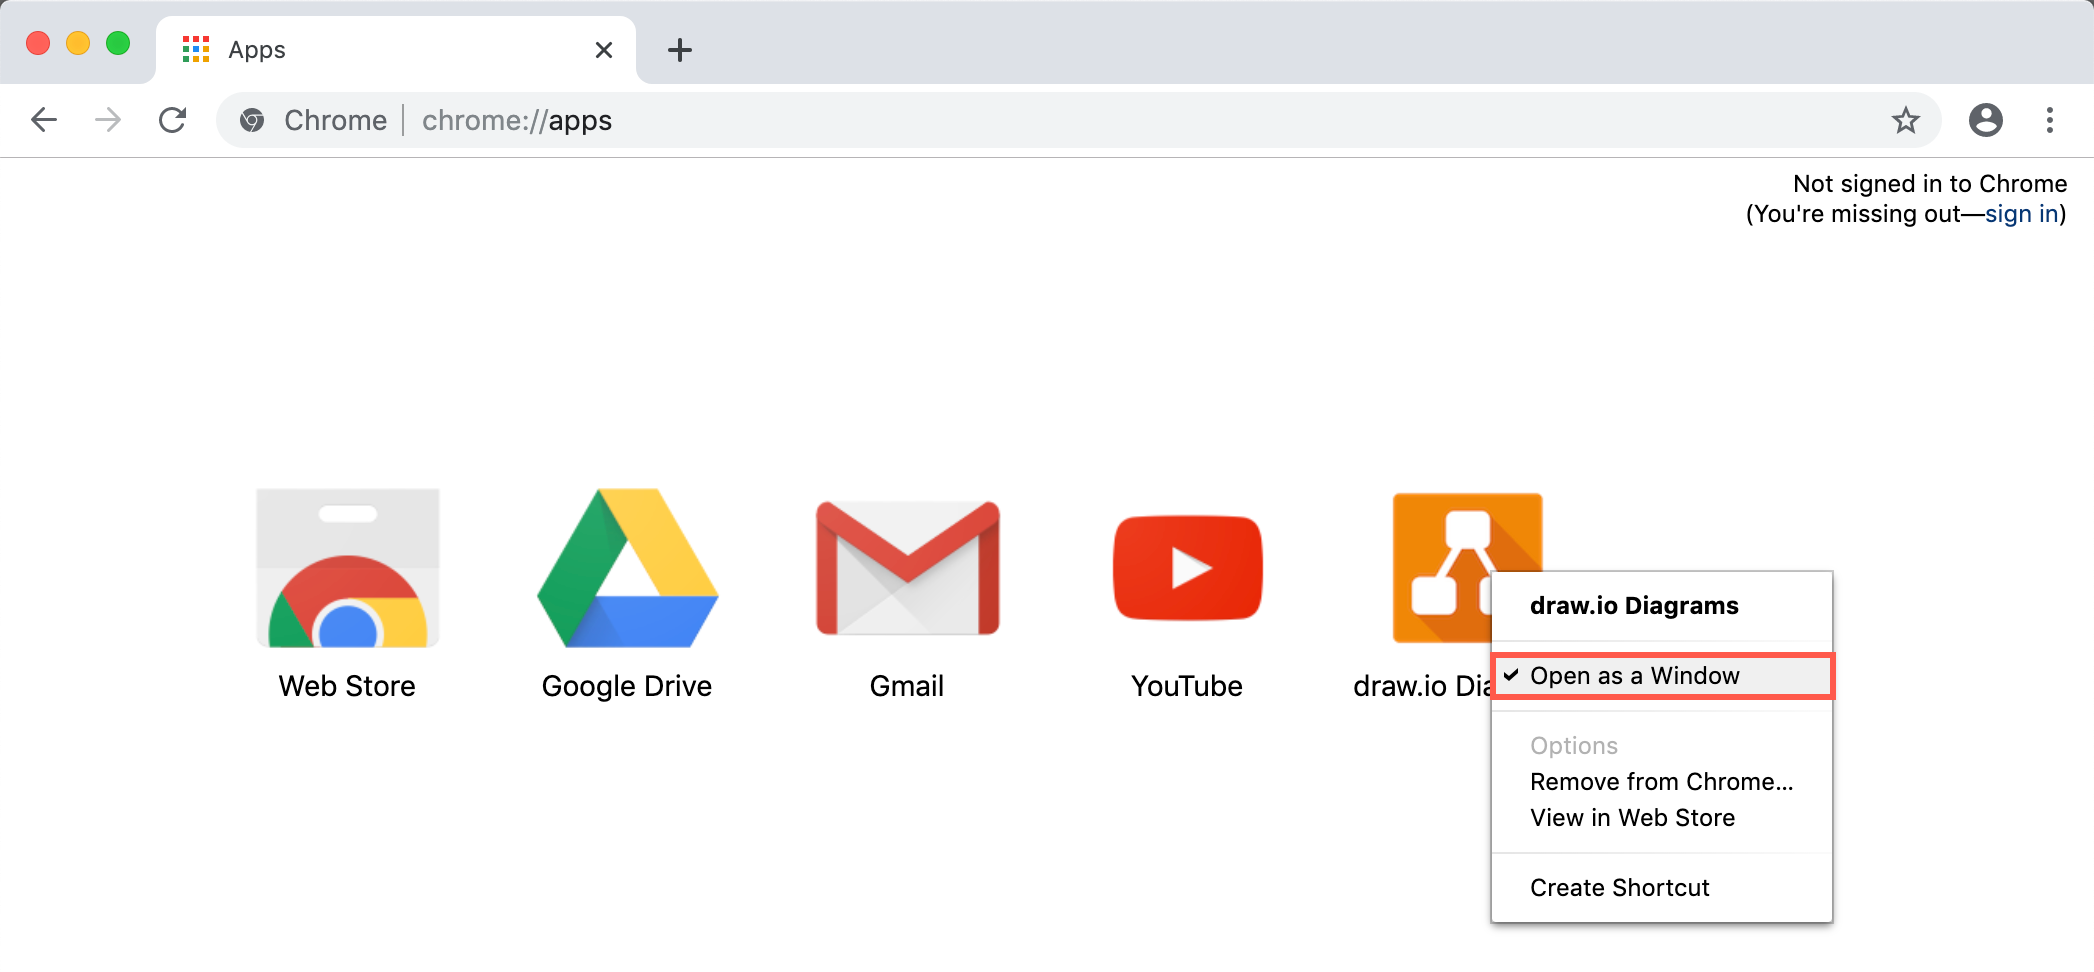 Make the draw.io Chrome app run without the Chrome search field